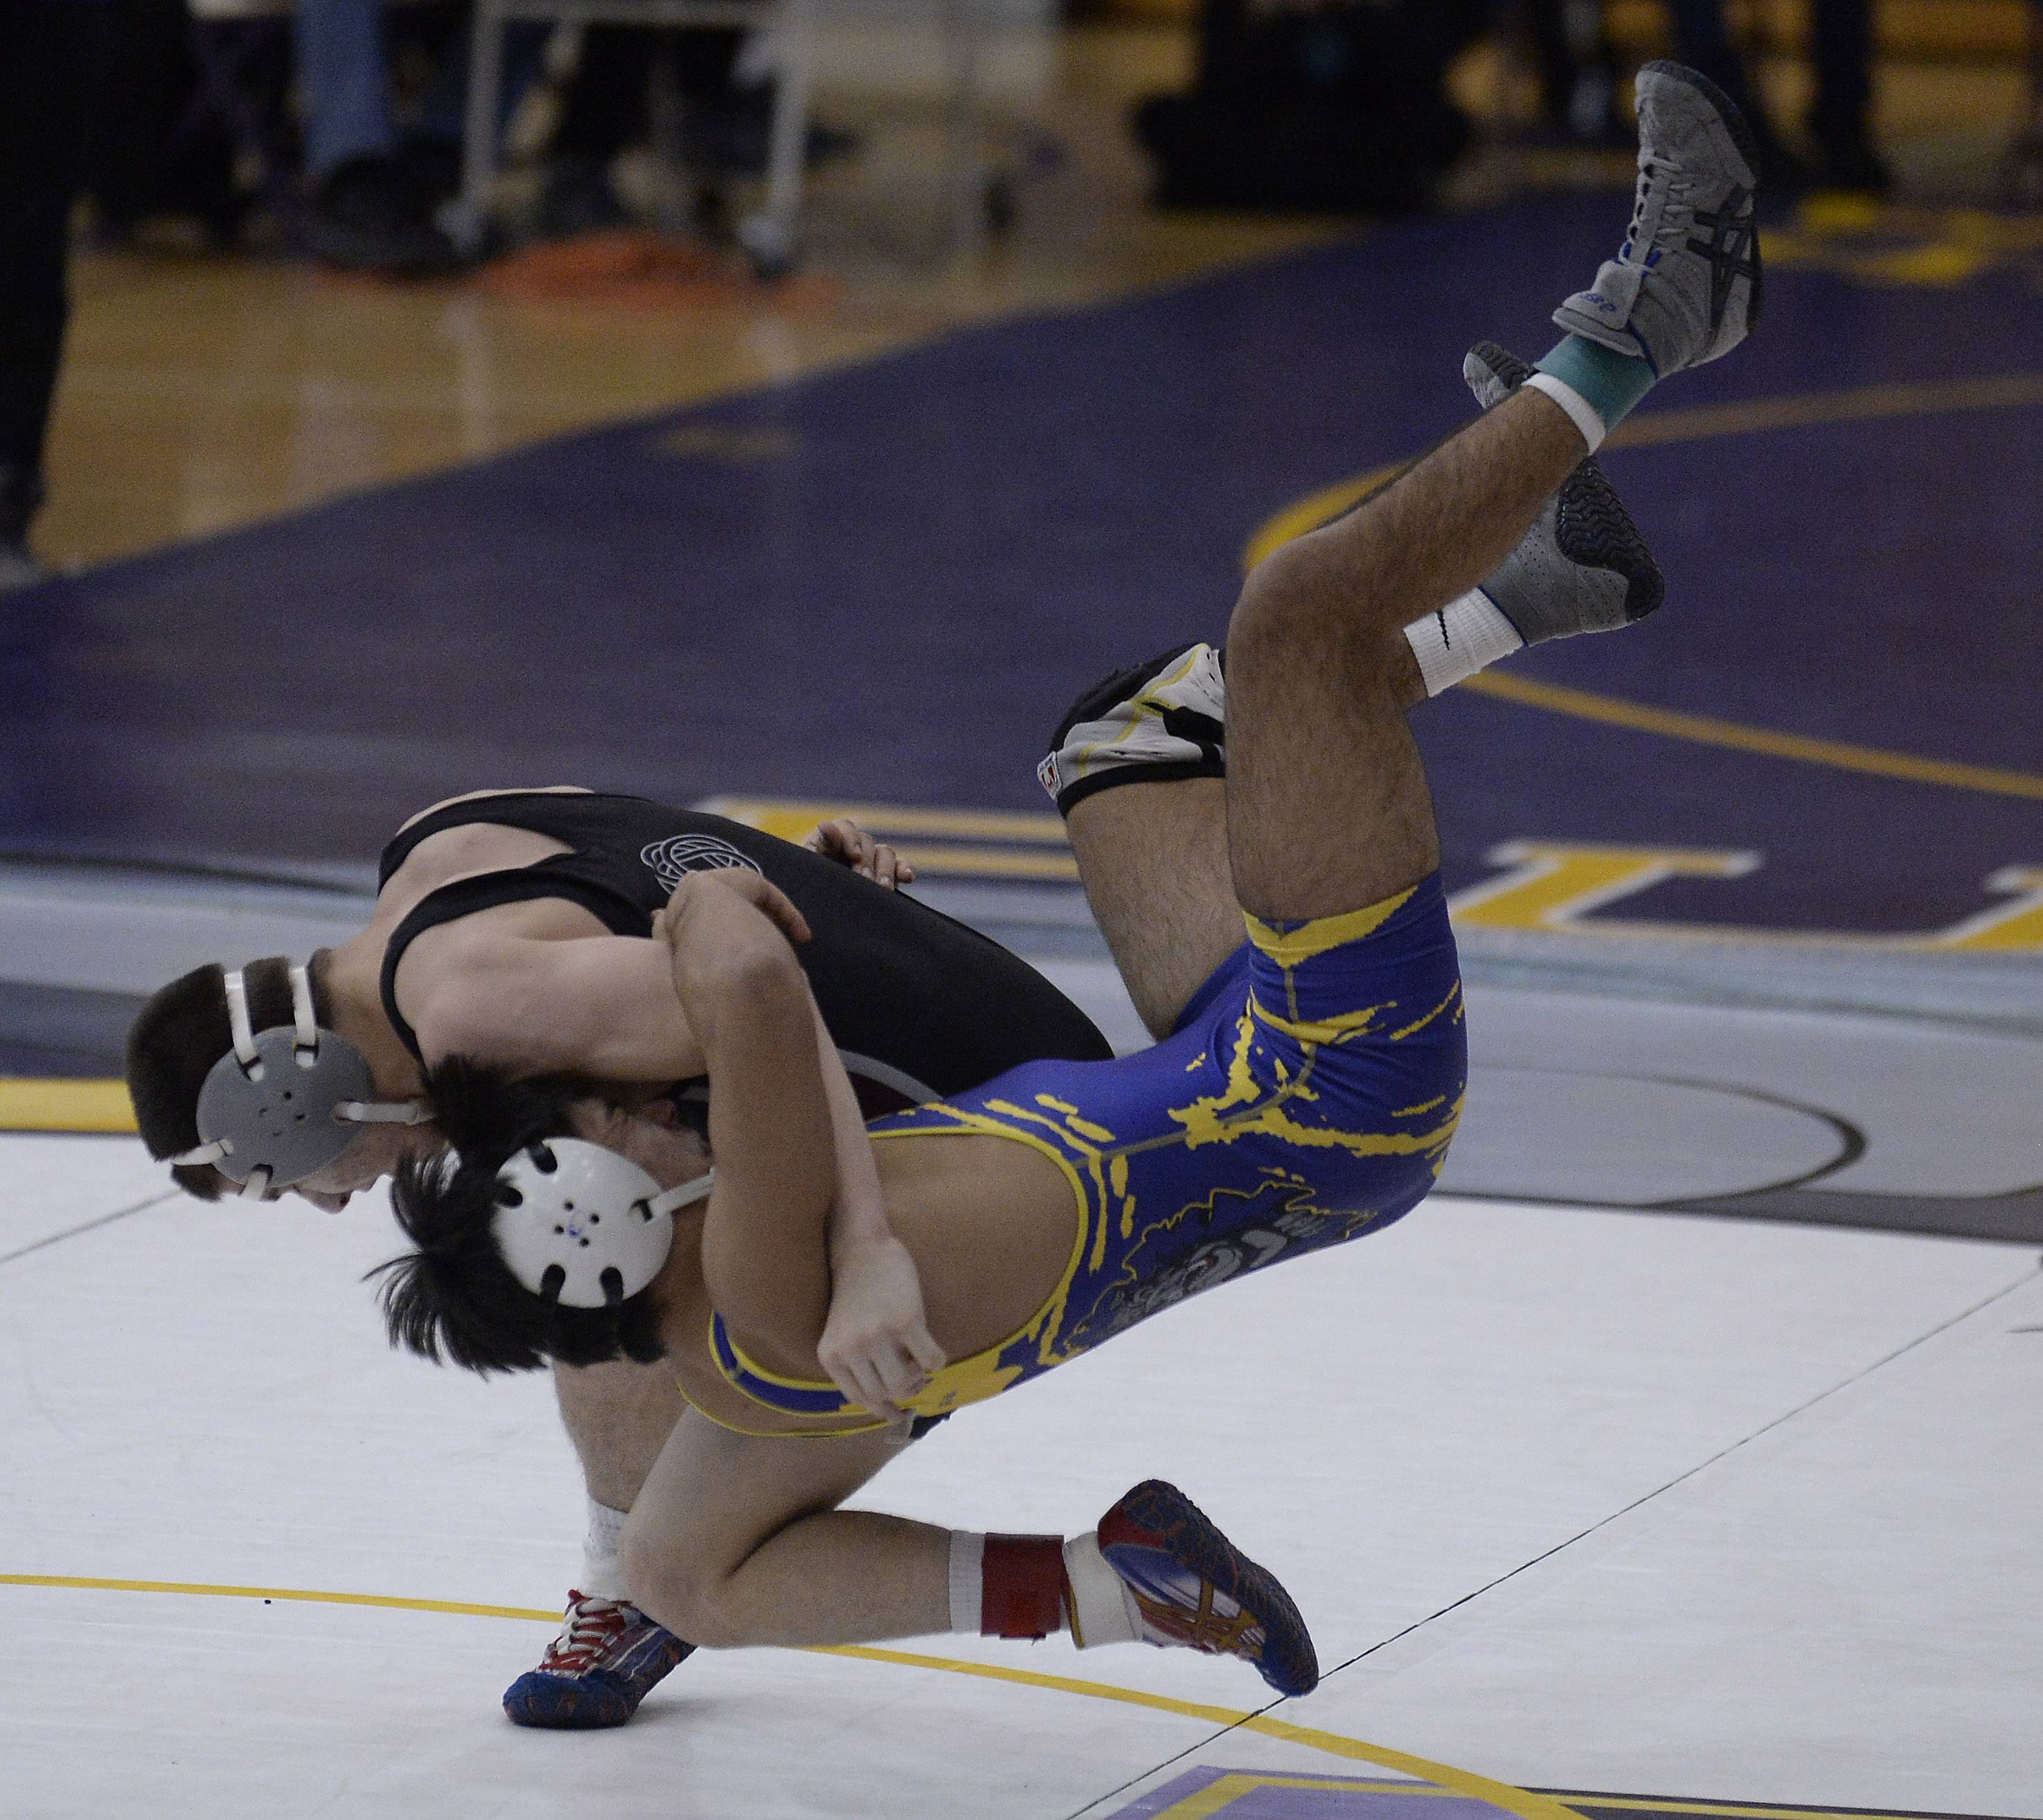 Wauconda's Jose Munoz is taken to the mat by Nathan Dlugopolski of Antioch in their 126-pound matchup on Saturday during the North Suburban Conference tournament finals at Wauconda.